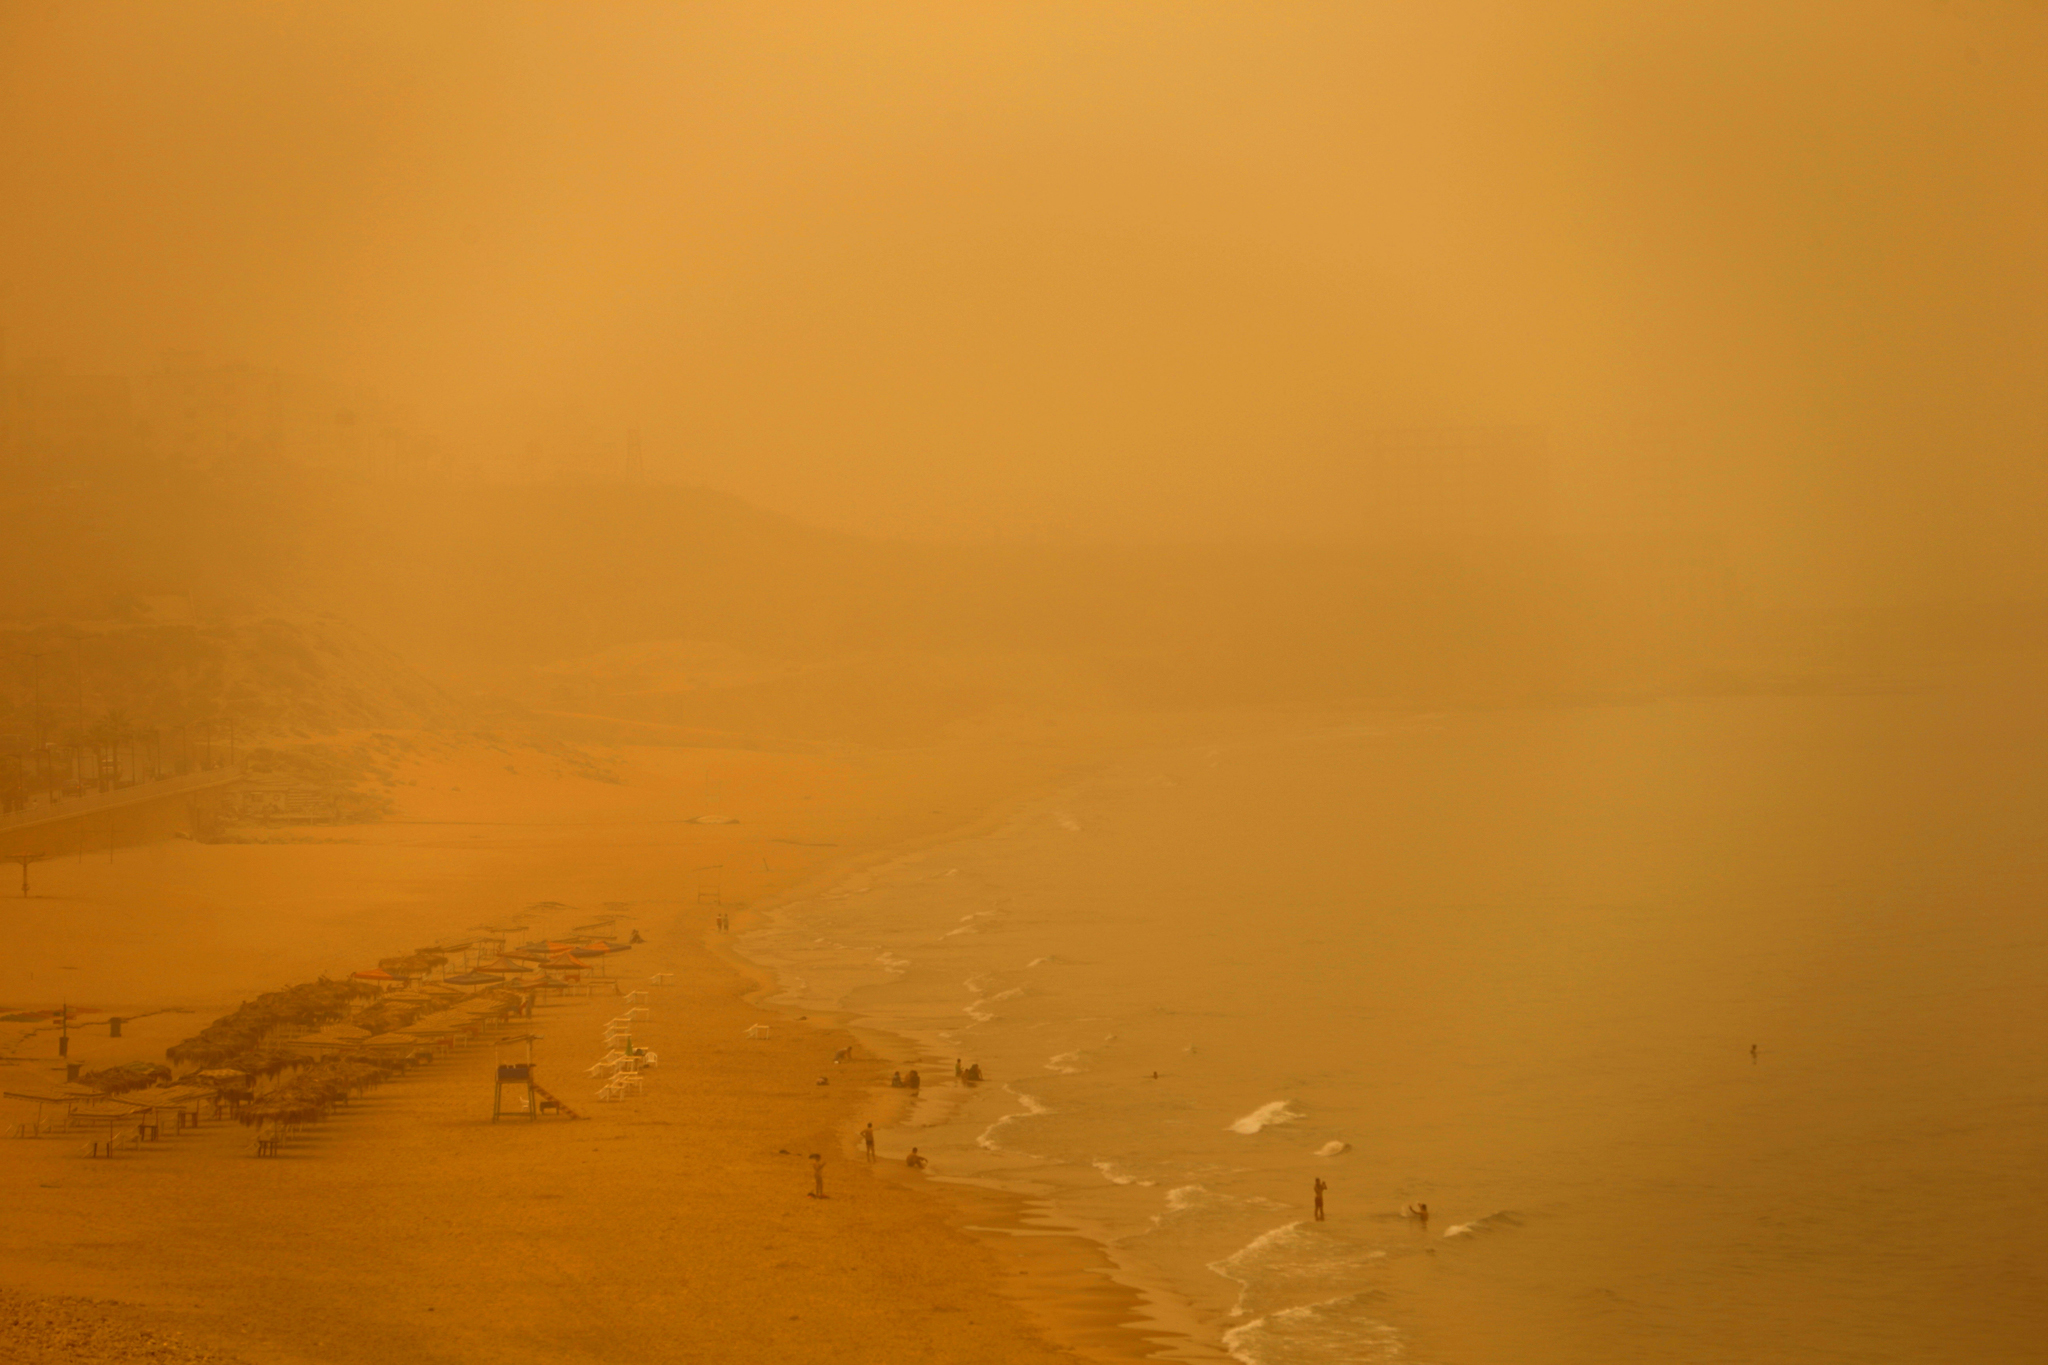 People swim at the public beach of Ramlet al Bayda during a sand  storm in Beirut, Lebanon, Tuesday, Sept. 8, 2015. An unseasonal  sandstorm has hit Lebanon and Syria, reducing visibility and sending  dozens to hospitals with breathing difficulties. (AP Photo/Hassan  Ammar)